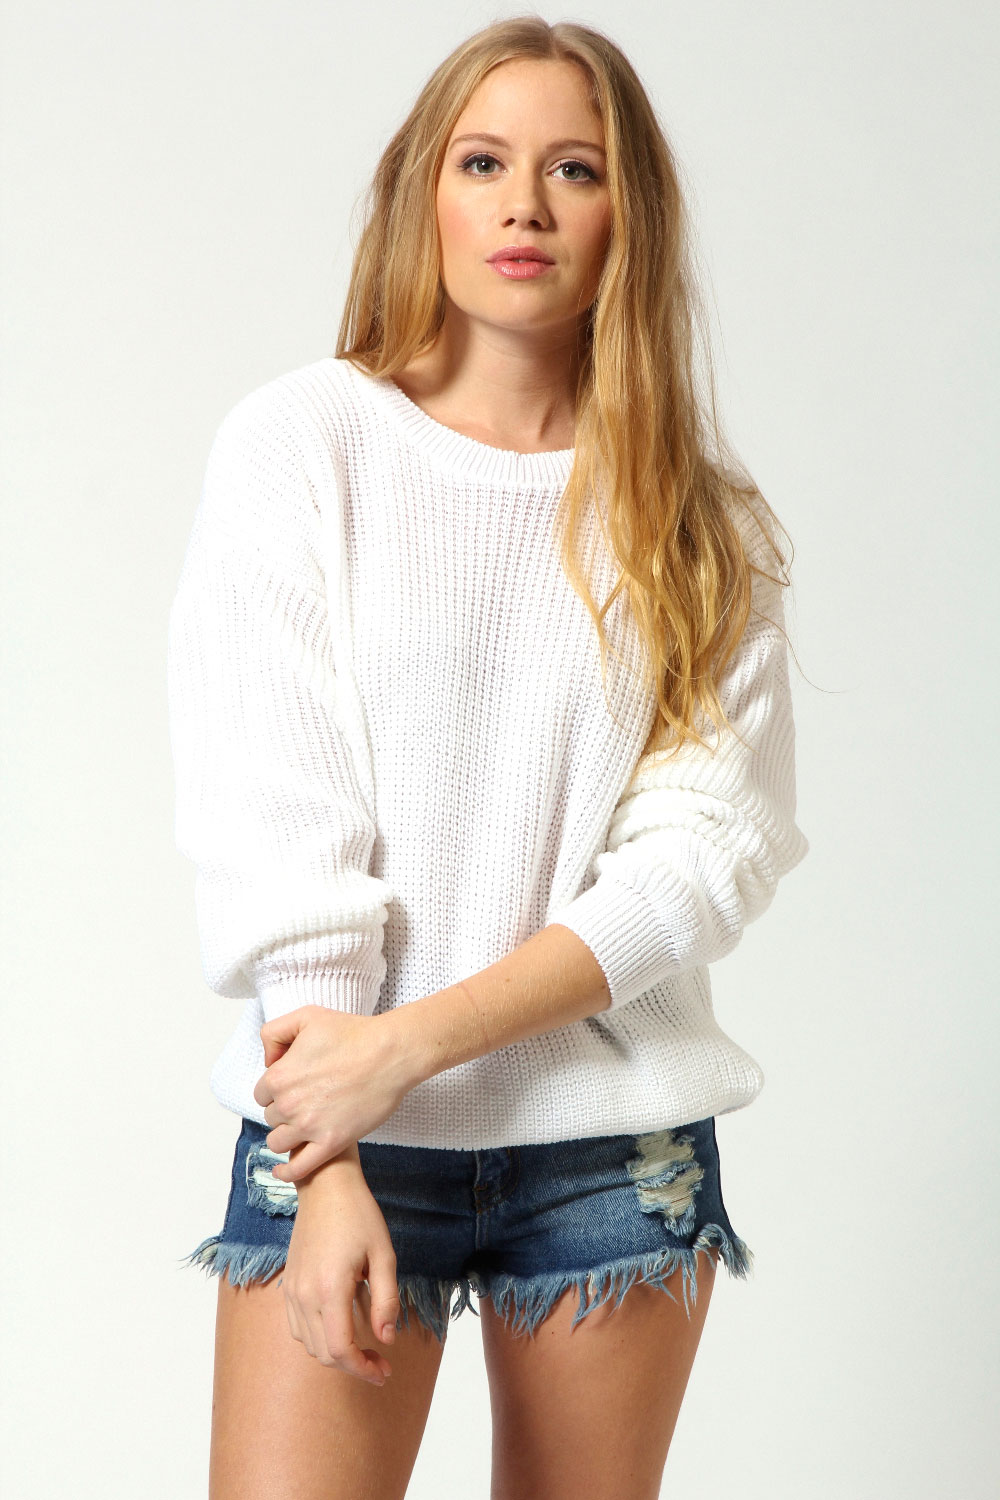 Oct 16,  · Women V Neck Sweater Jumper Oversized Baggy Long Sleeve Tops Pullover Knitwear. C $ Free shipping. Womens Autumn Knitted Sweater Blouses Ladies V-neck Baggy Jumper Tops Plus Size. C $ Free shipping. Sexy Women Off Shoulder Baggy Loose Irregular Tops Casual Knitted Sweater Jumper.